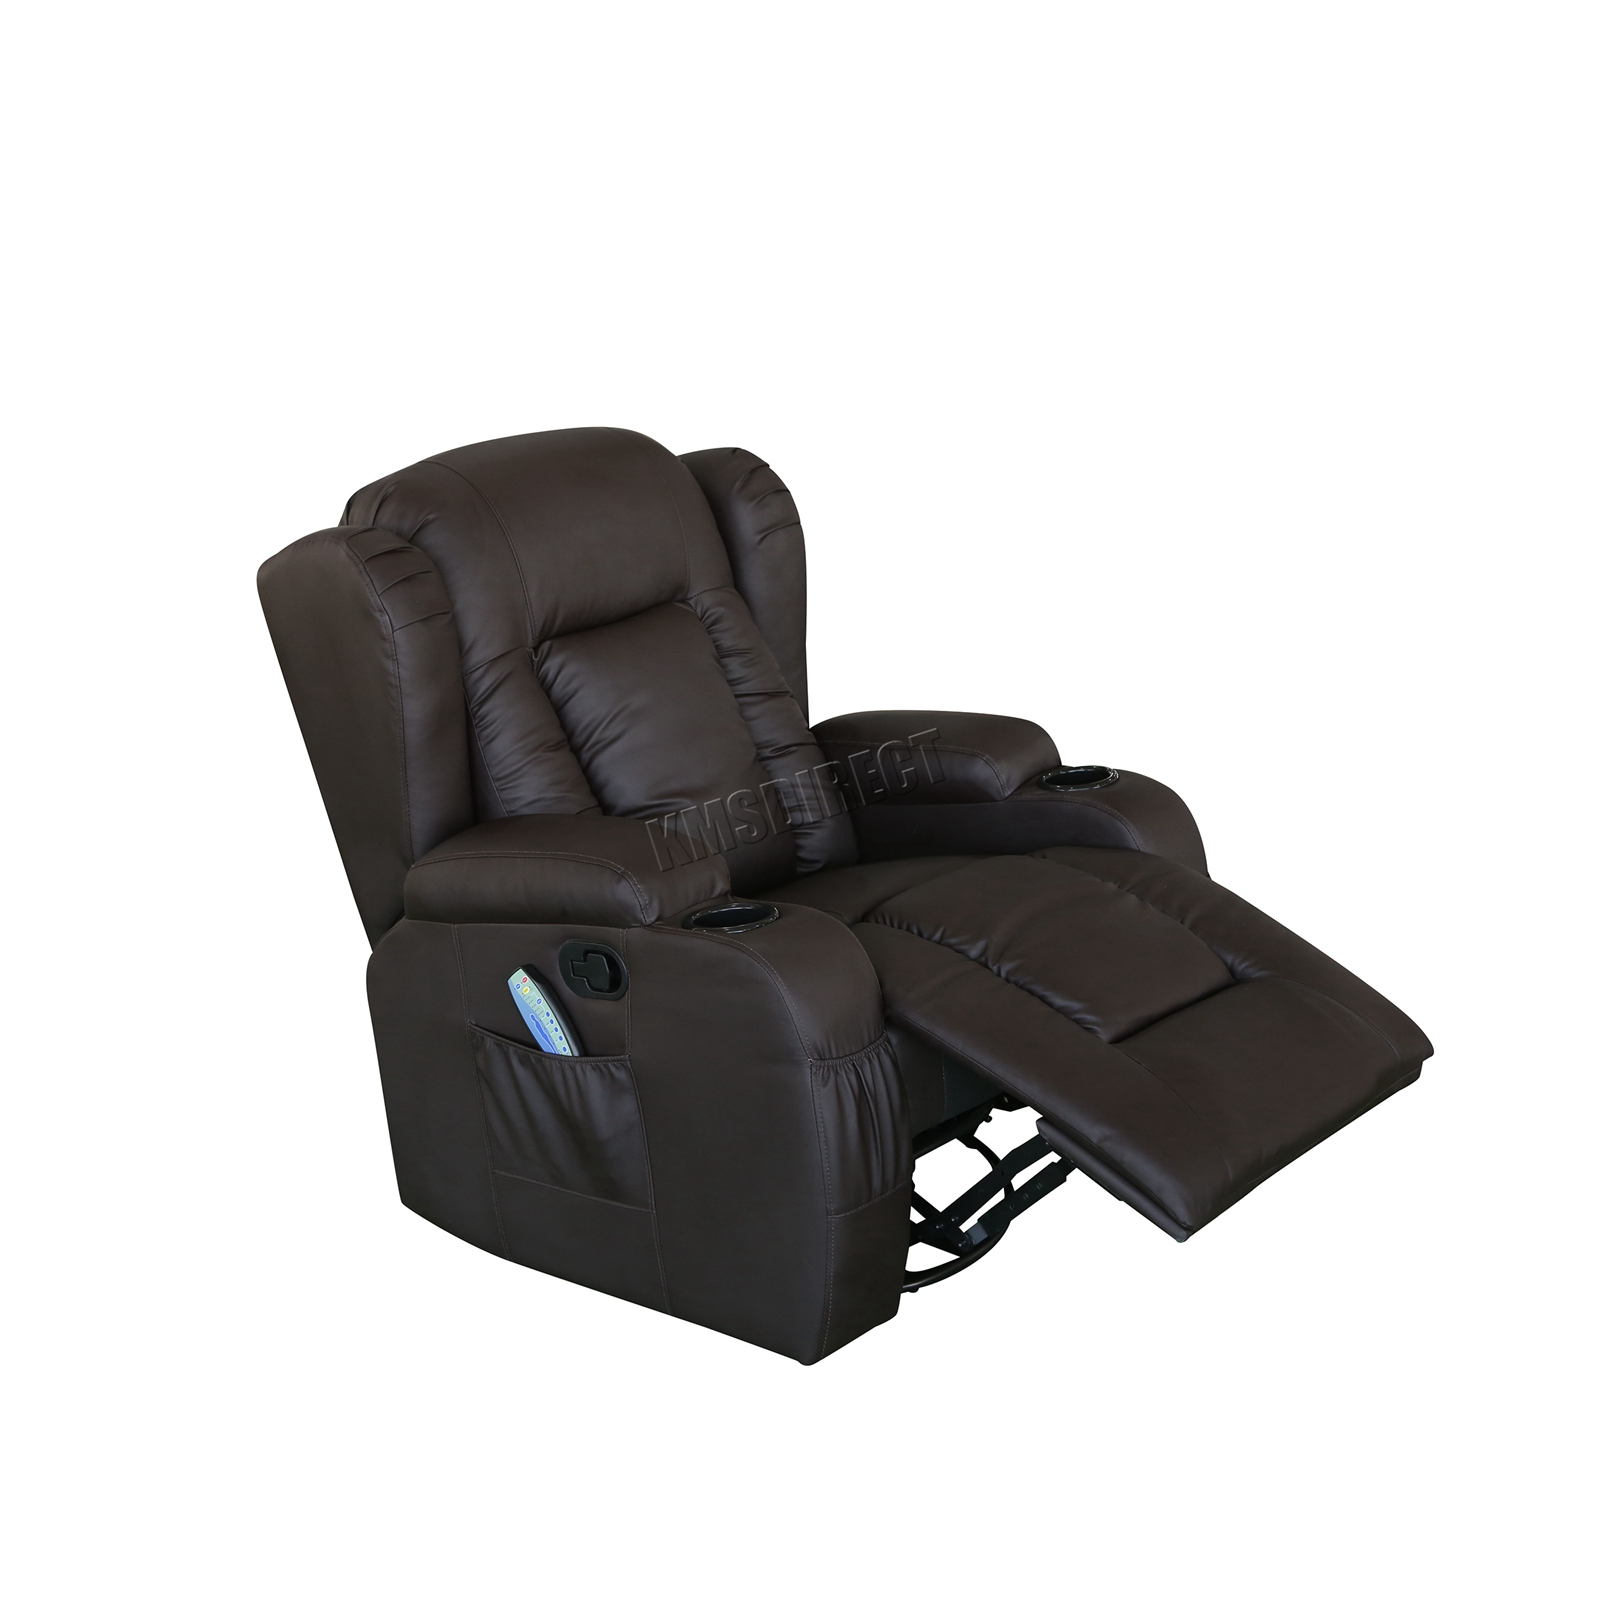 WESTWOOD-Leather-Recliner-Armchair-Swivel-Heated-chair-Massage-Gaming-Chair thumbnail 29